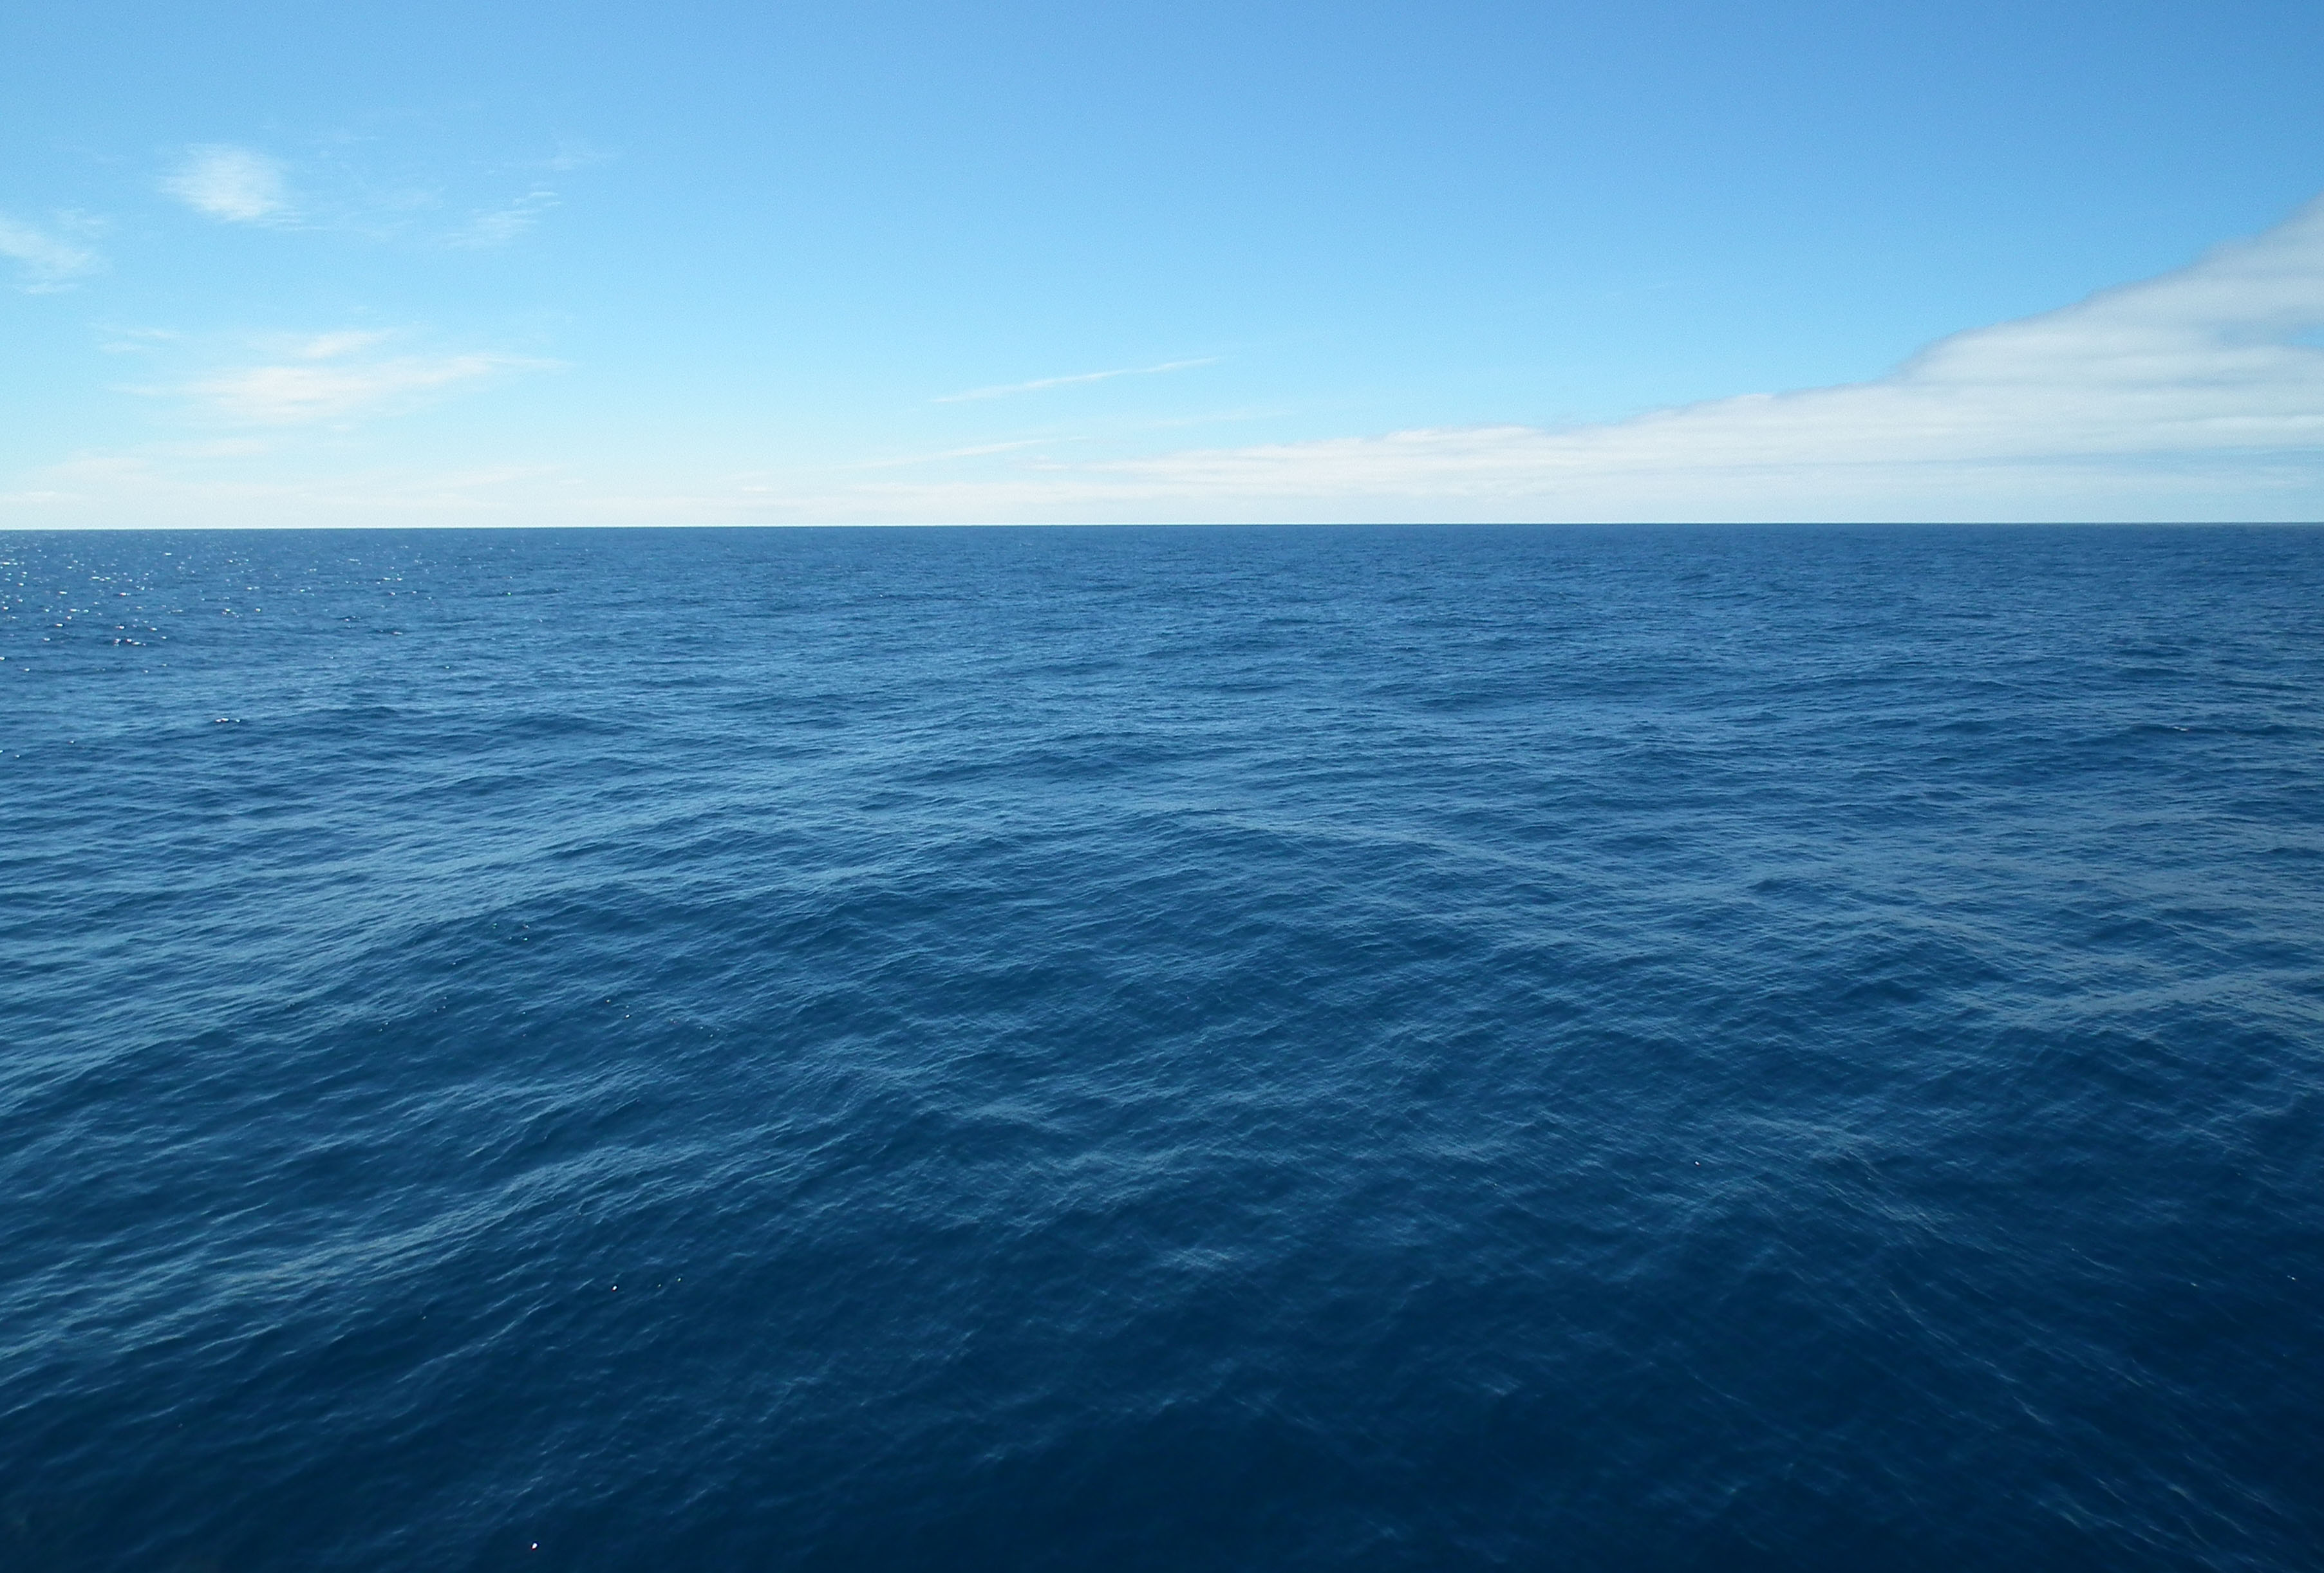 Ocean wallpapers high quality download free for Ocean images